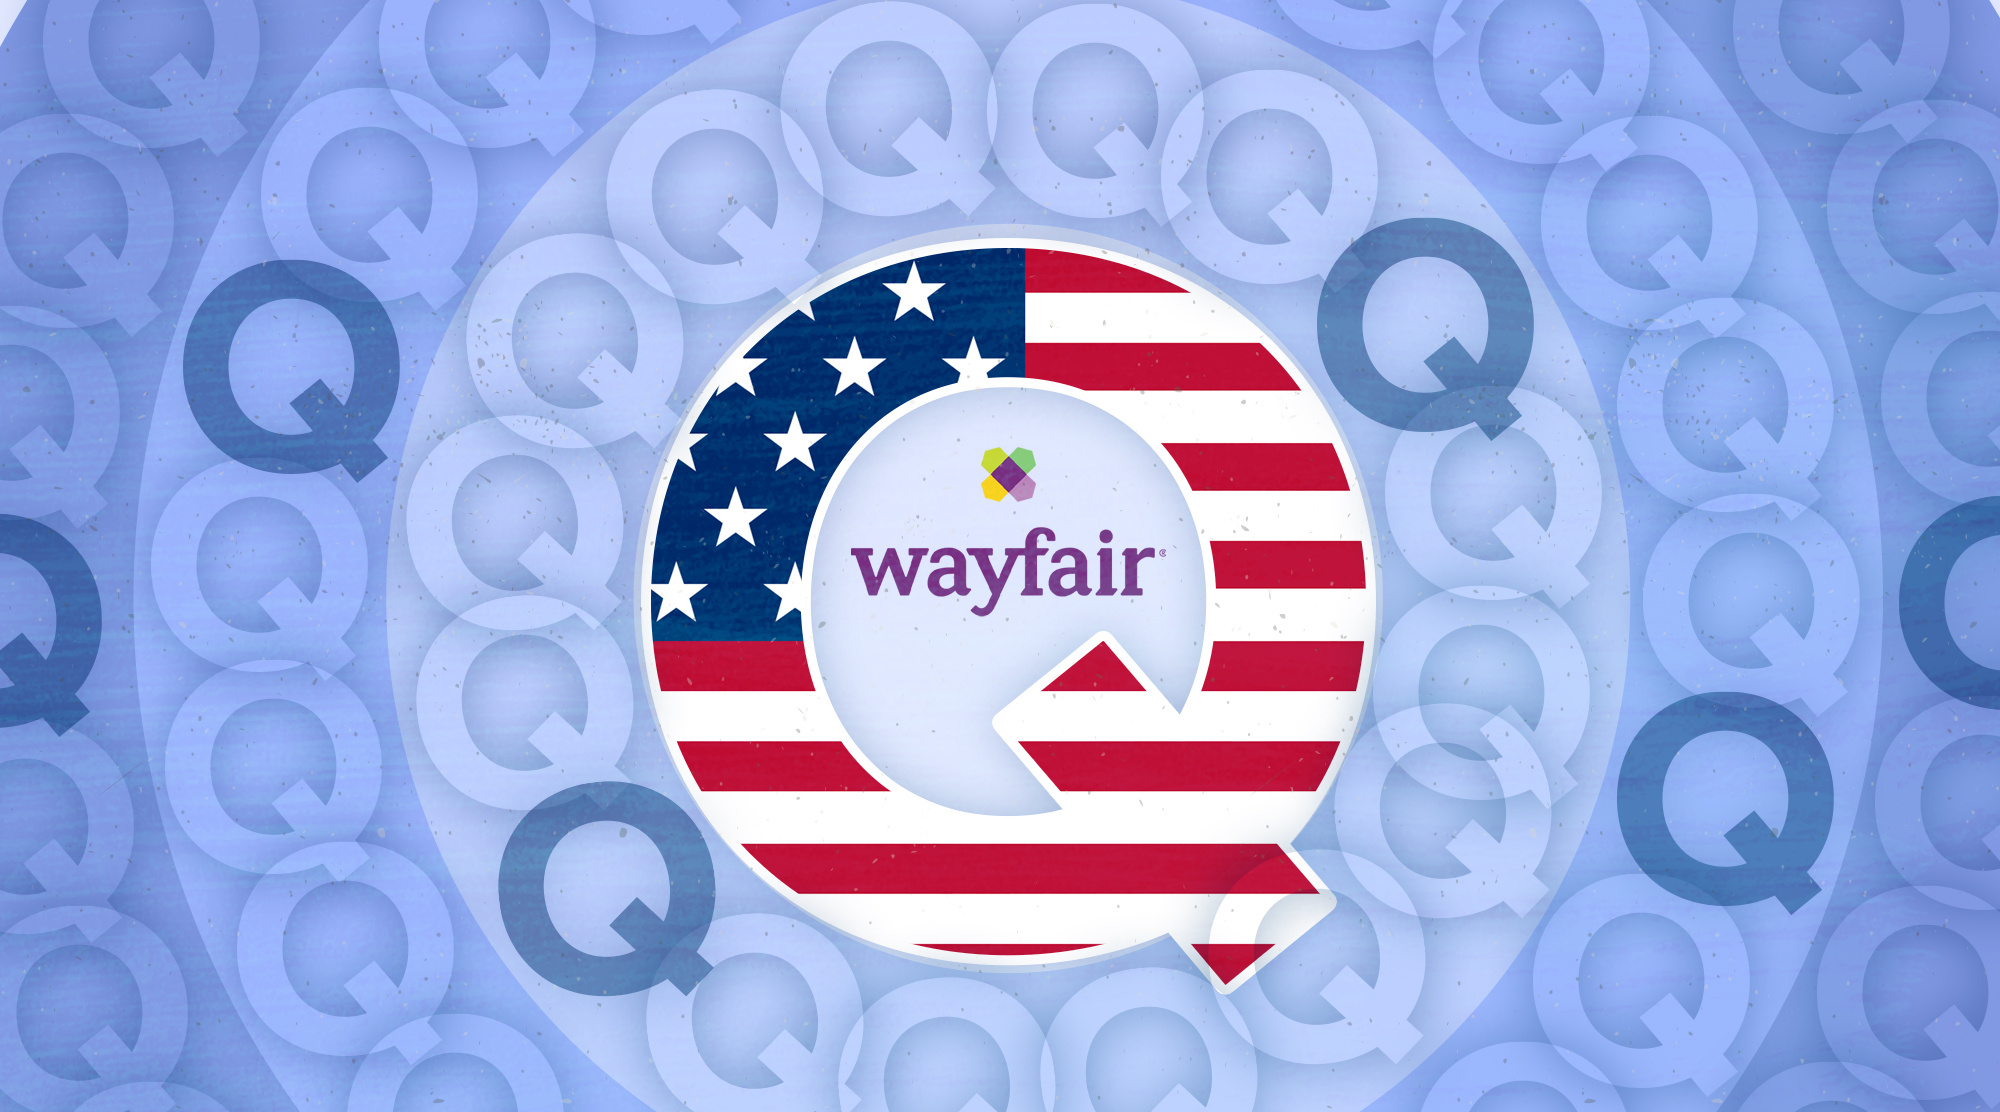 Join the Q: How the Wayfair Conspiracy Got Absorbed by QAnon